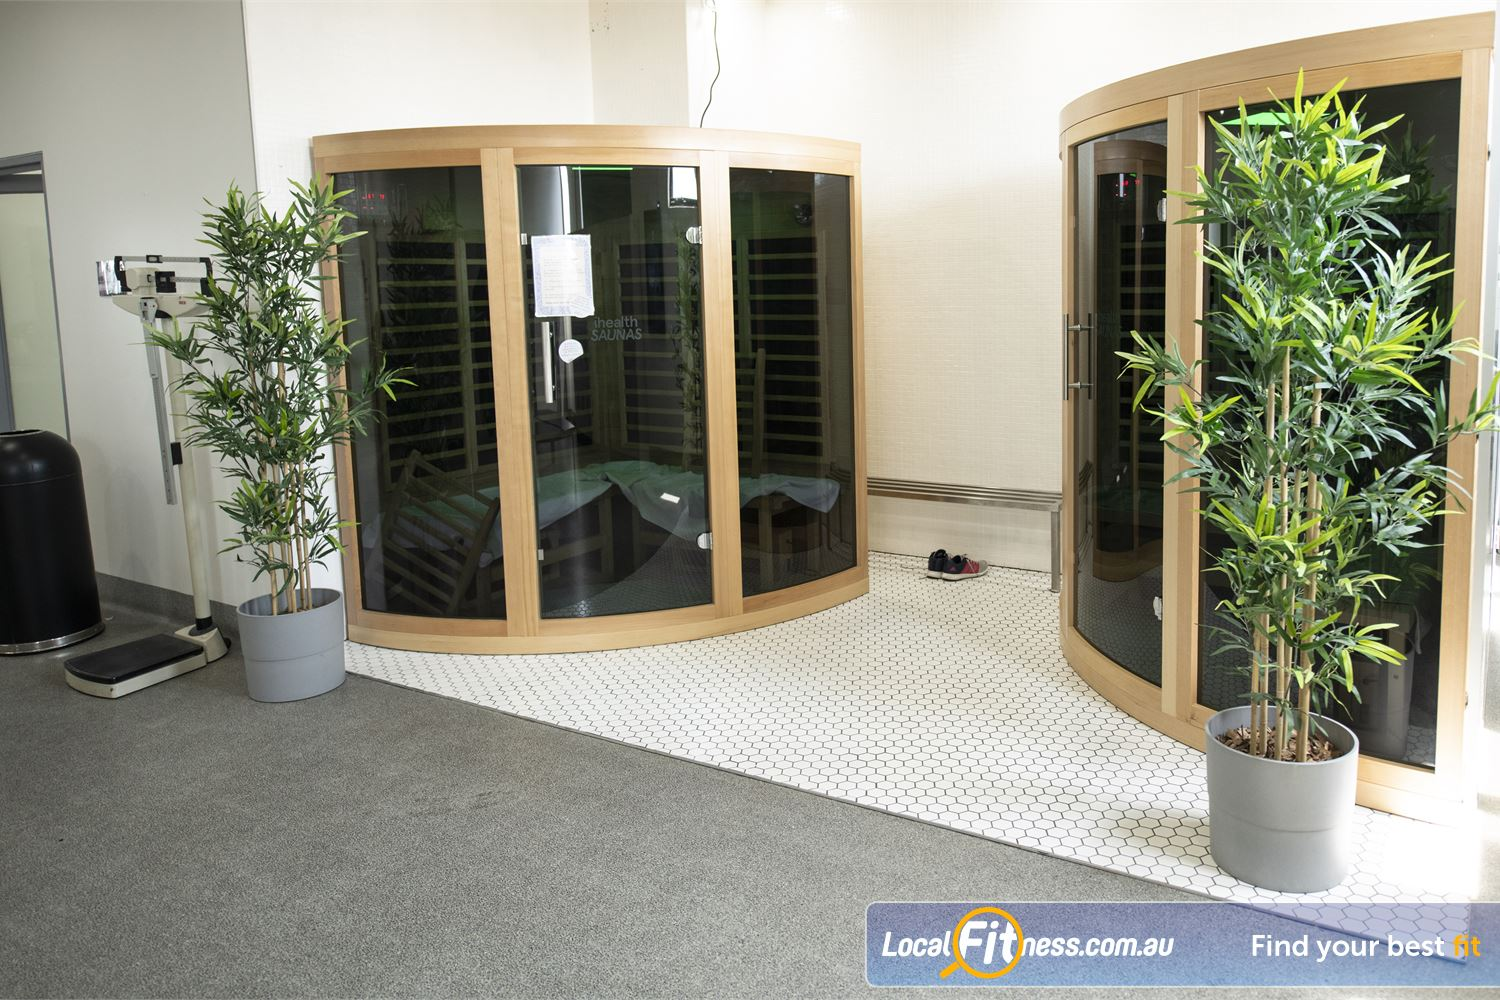 Fernwood Fitness Near Narwee Detox your body with our infra-red sauna in our luxury womens retreat.